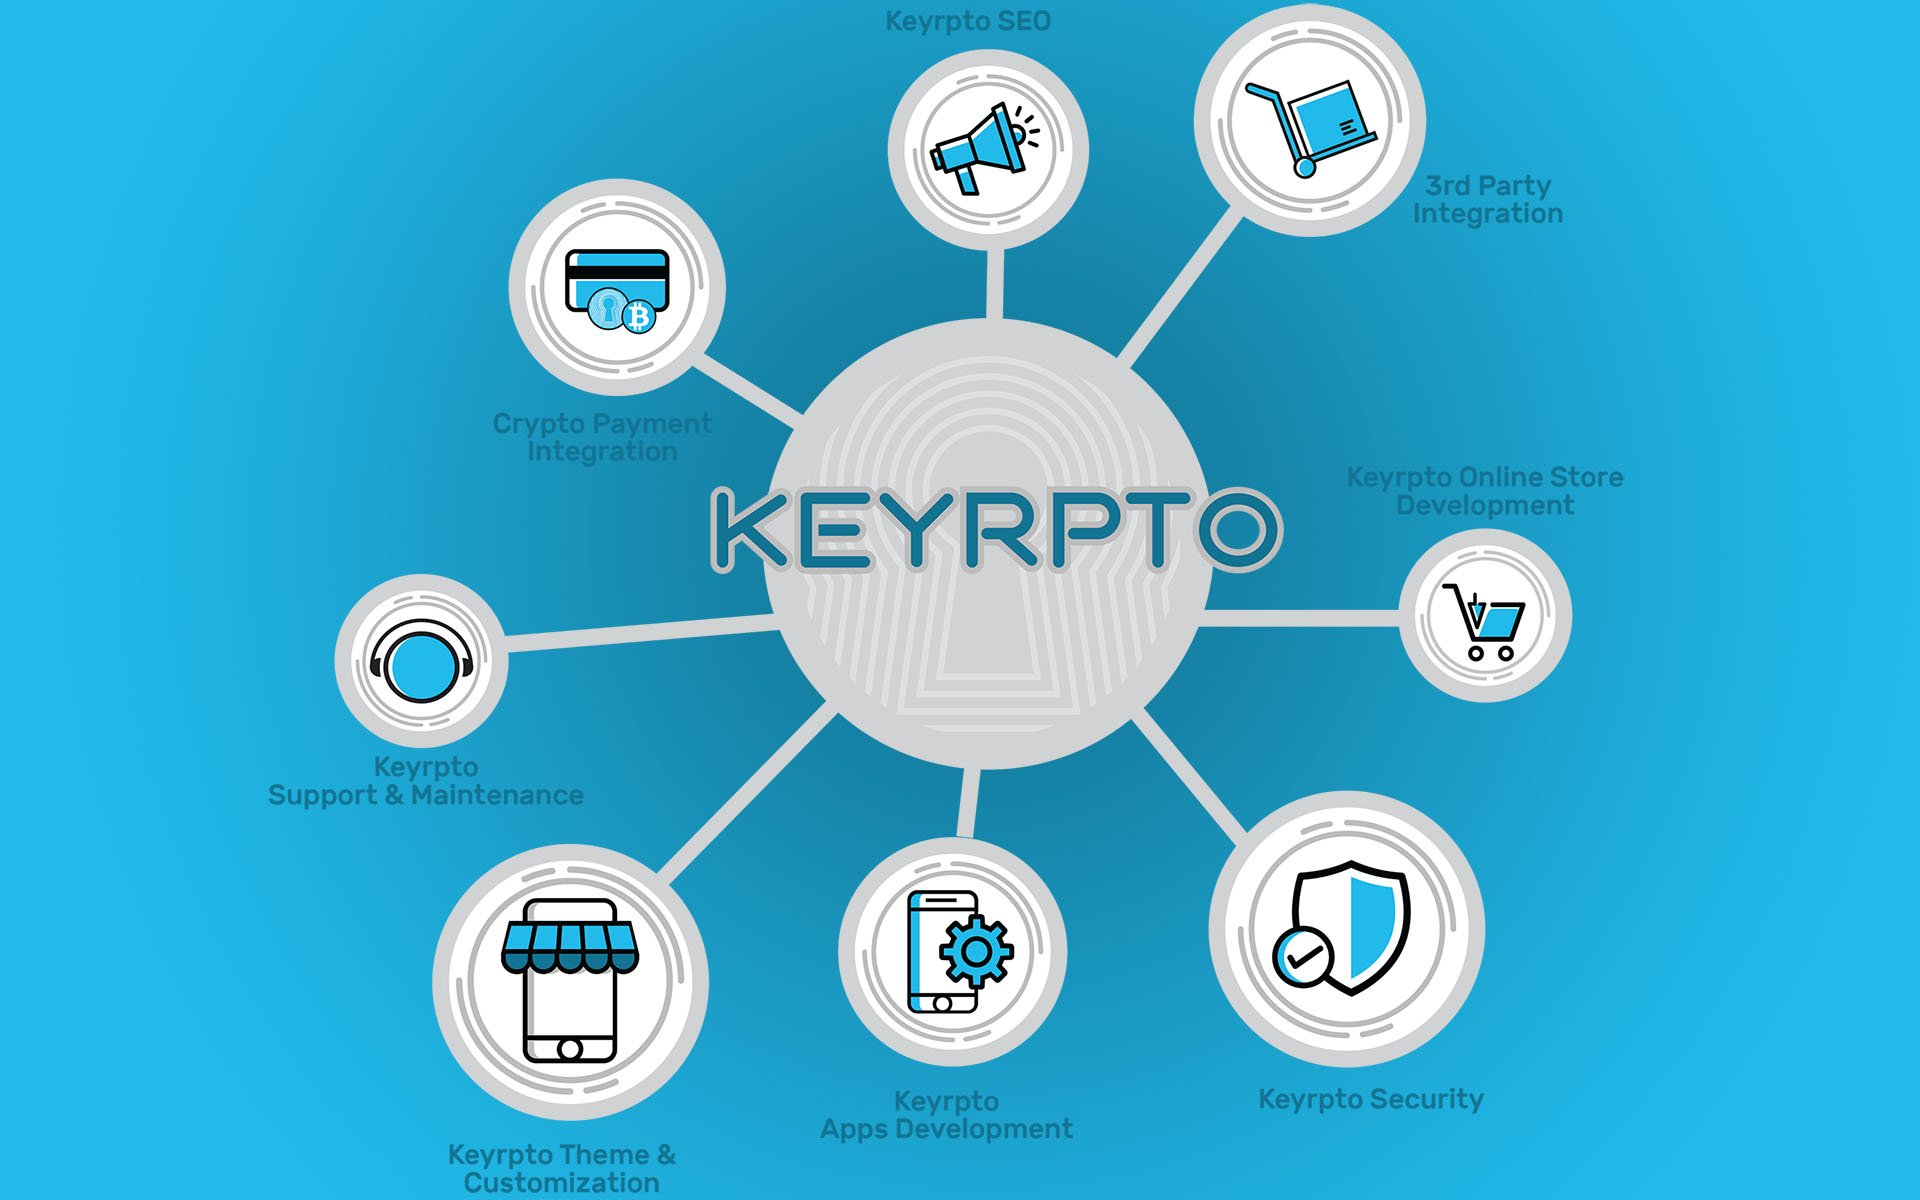 Keyrpto ICO - Last 3 Days to Receive 15% Bonus, Don't Miss Out!